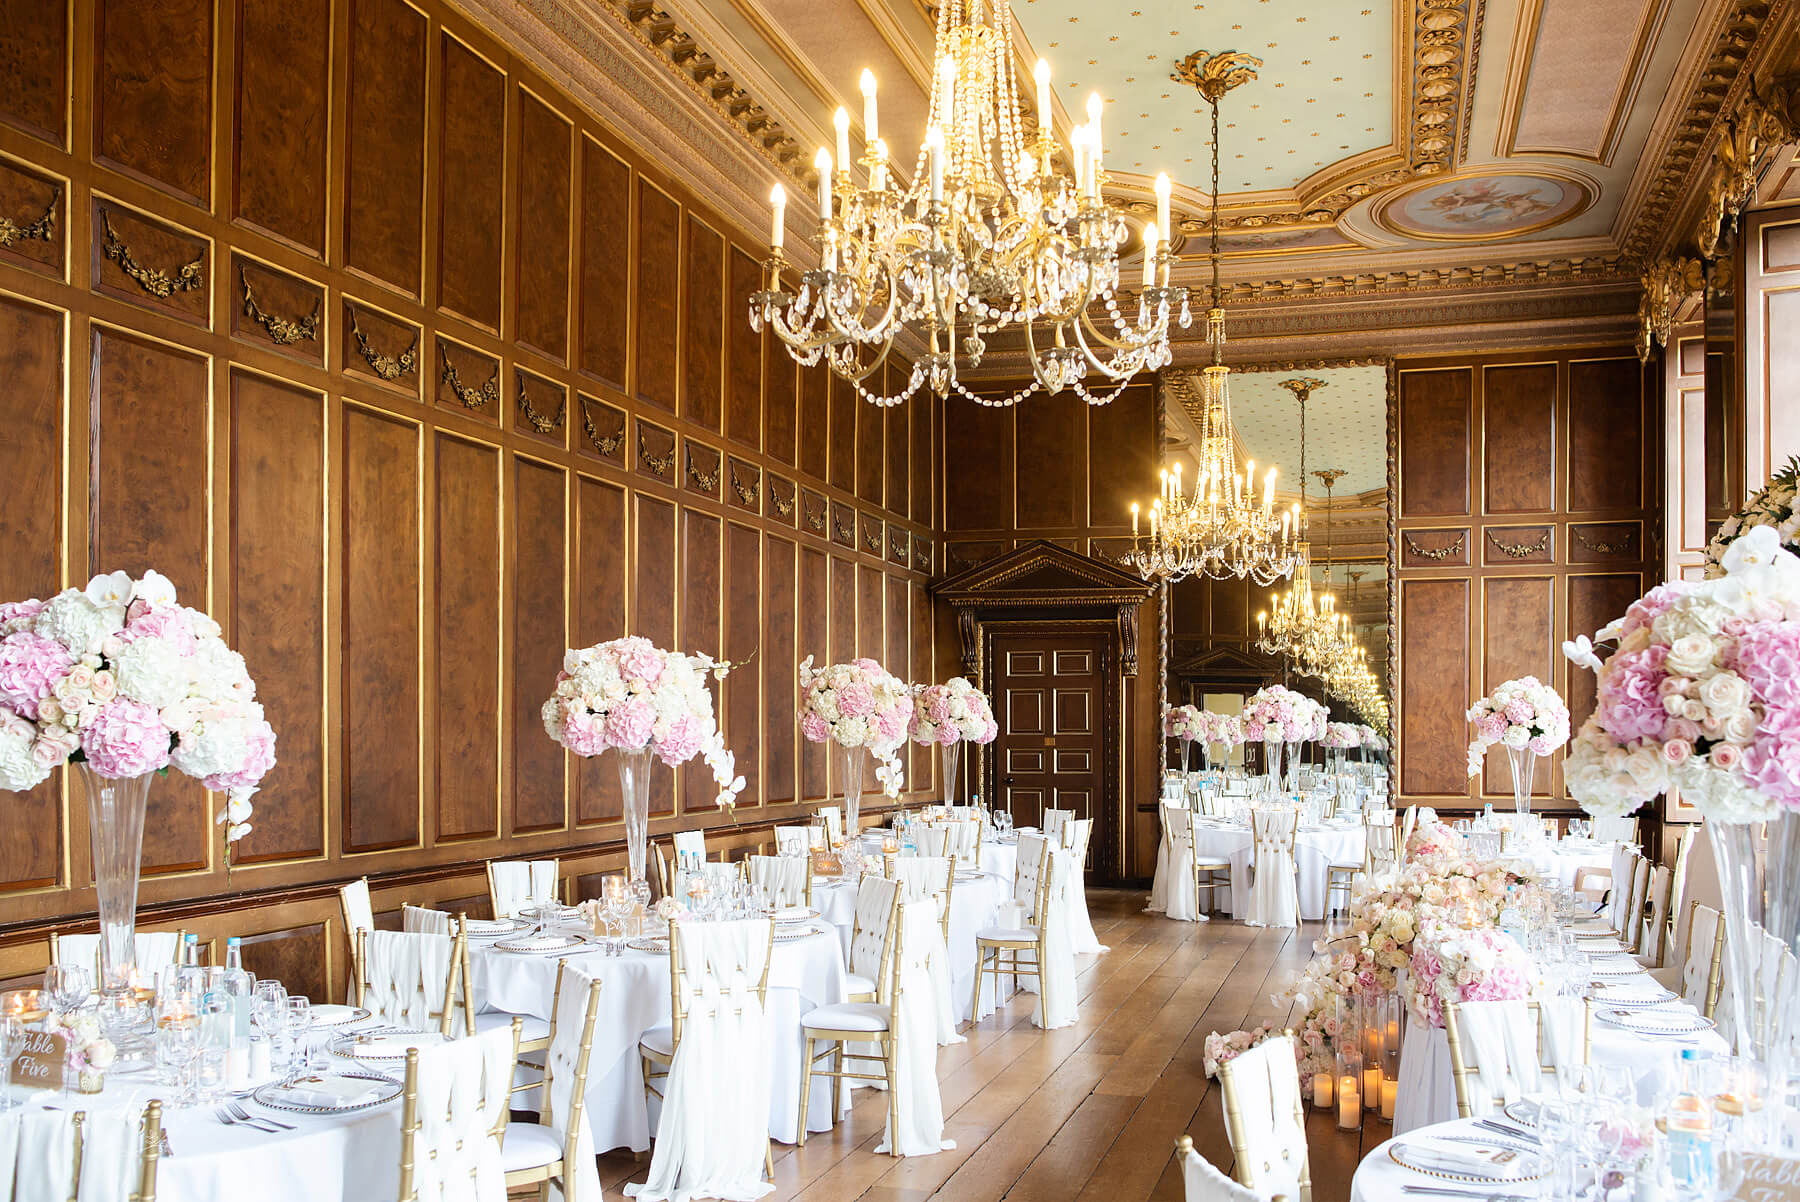 The Ballroom at Gosfield Hall decorated by Jades Florist